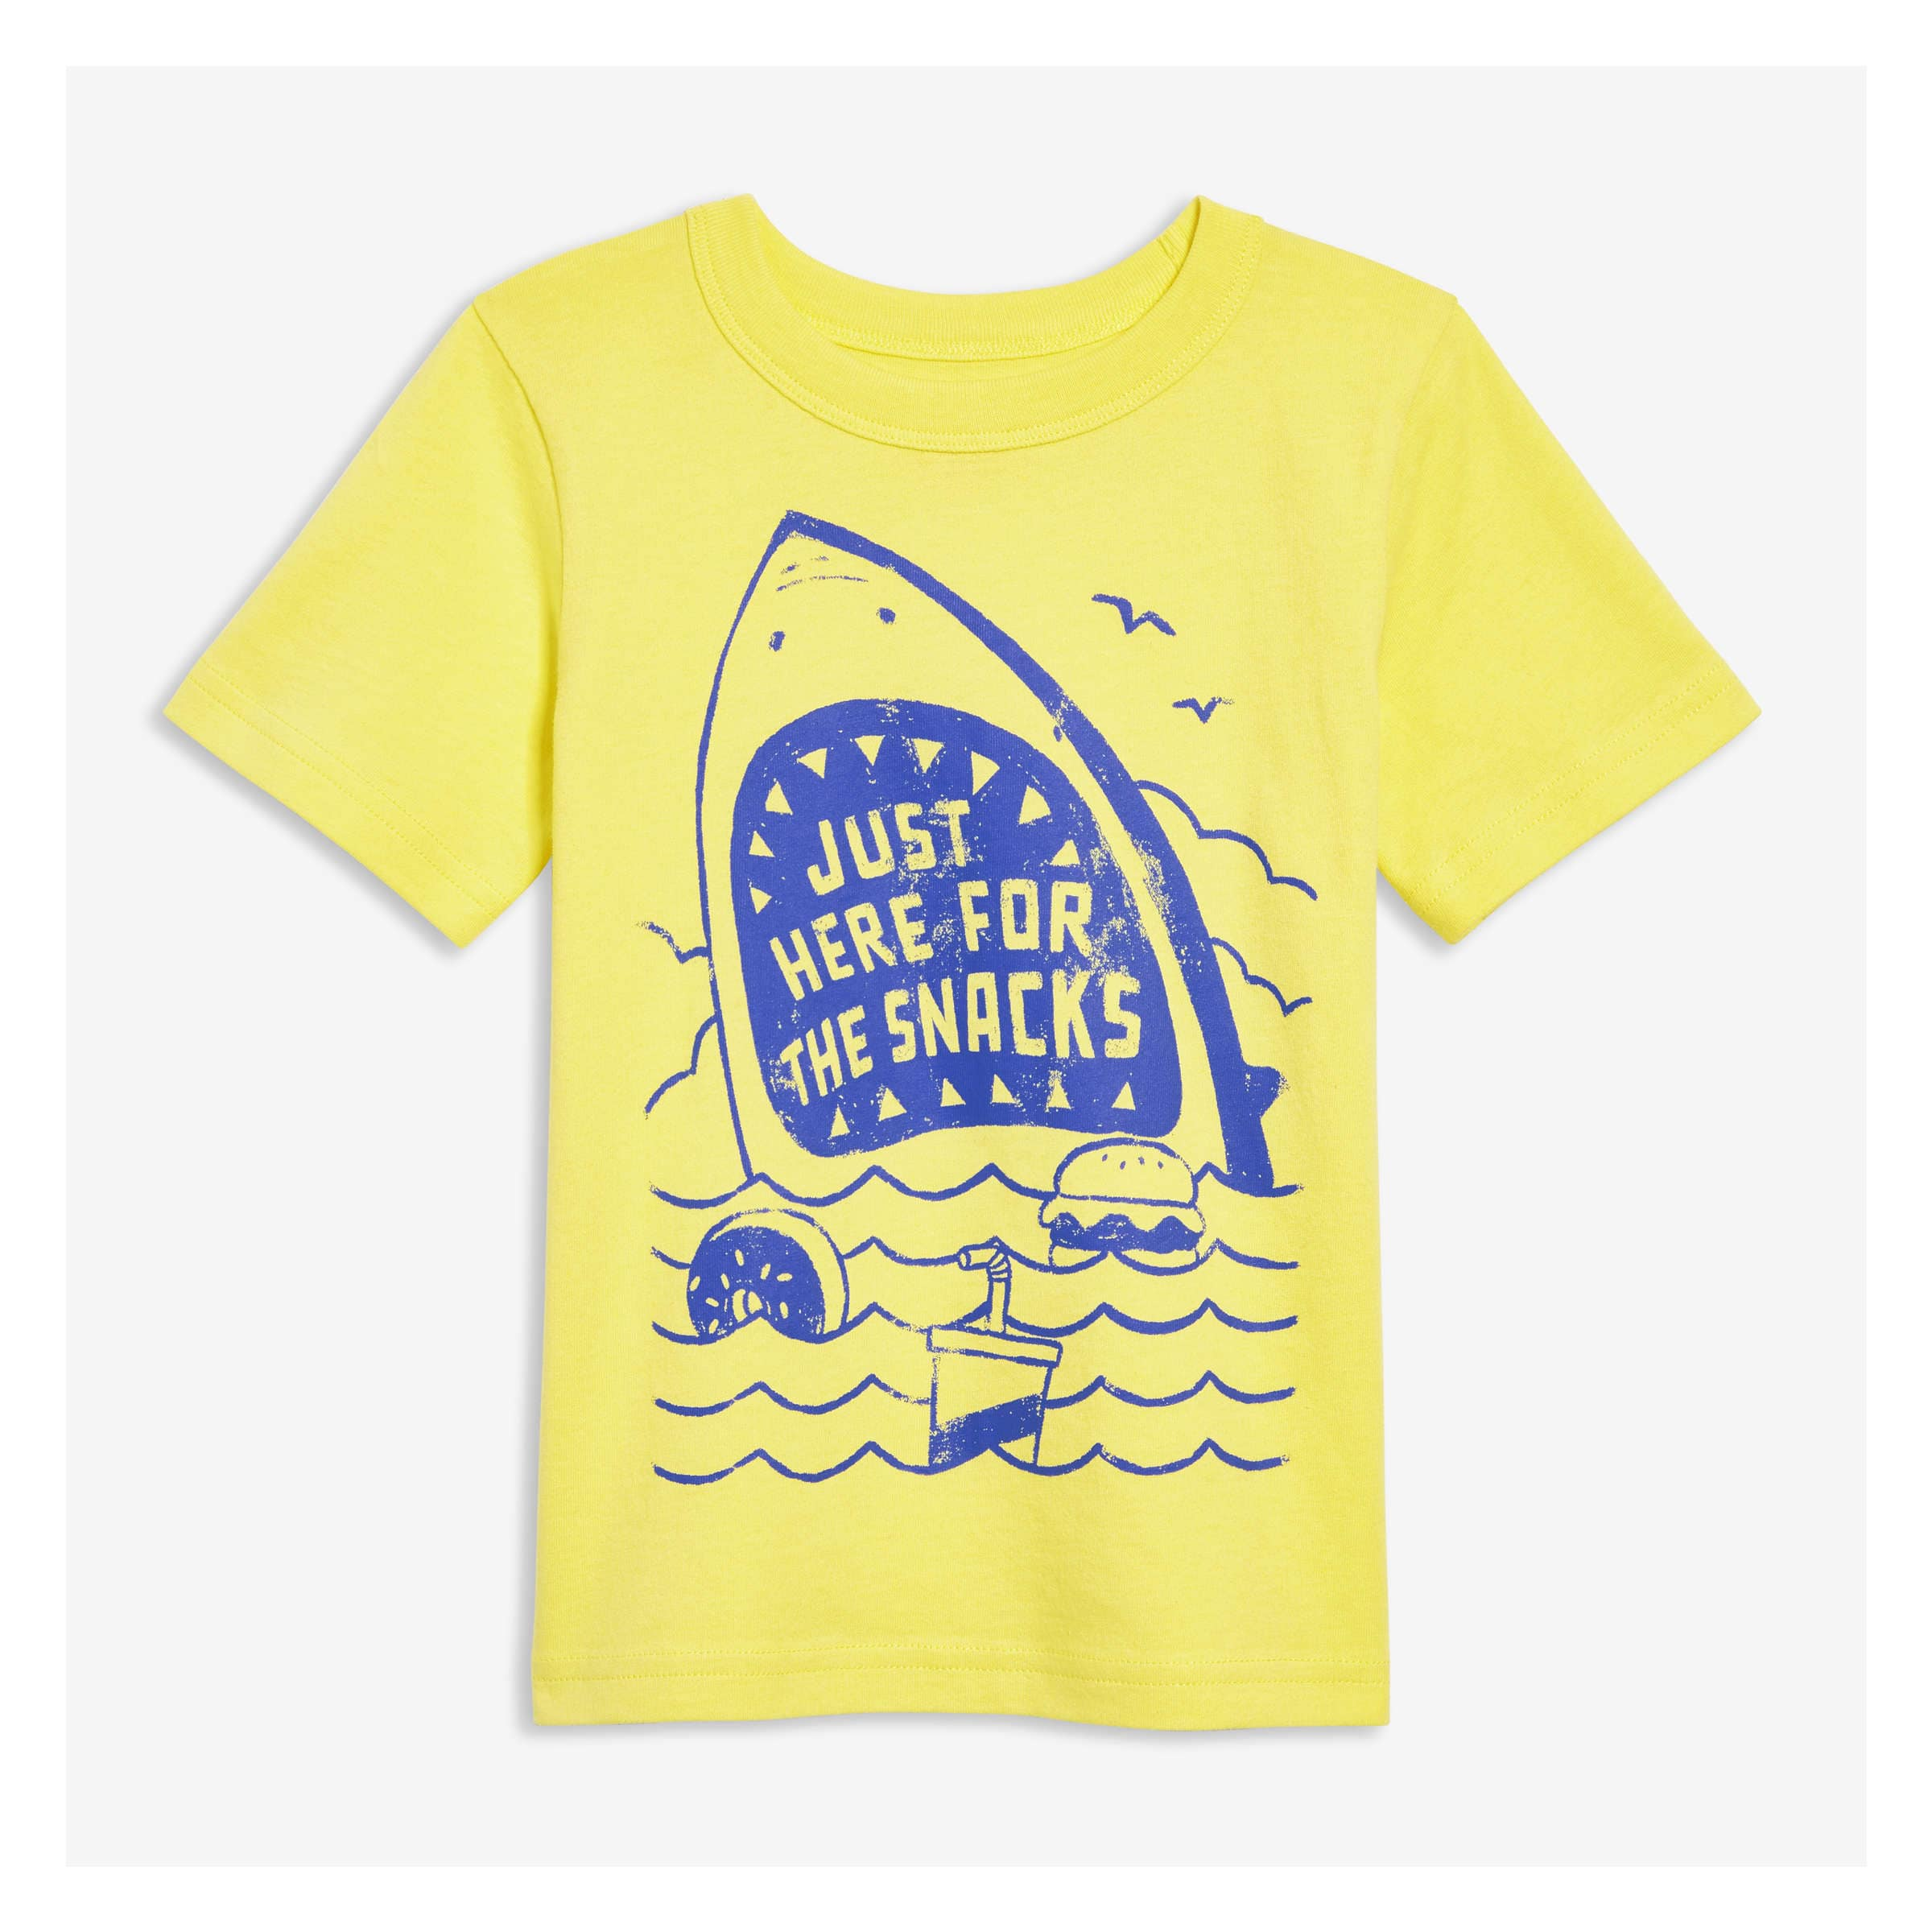 528152d46 Toddler Boys' Graphic Tee in Nectar YELLOW from Joe Fresh